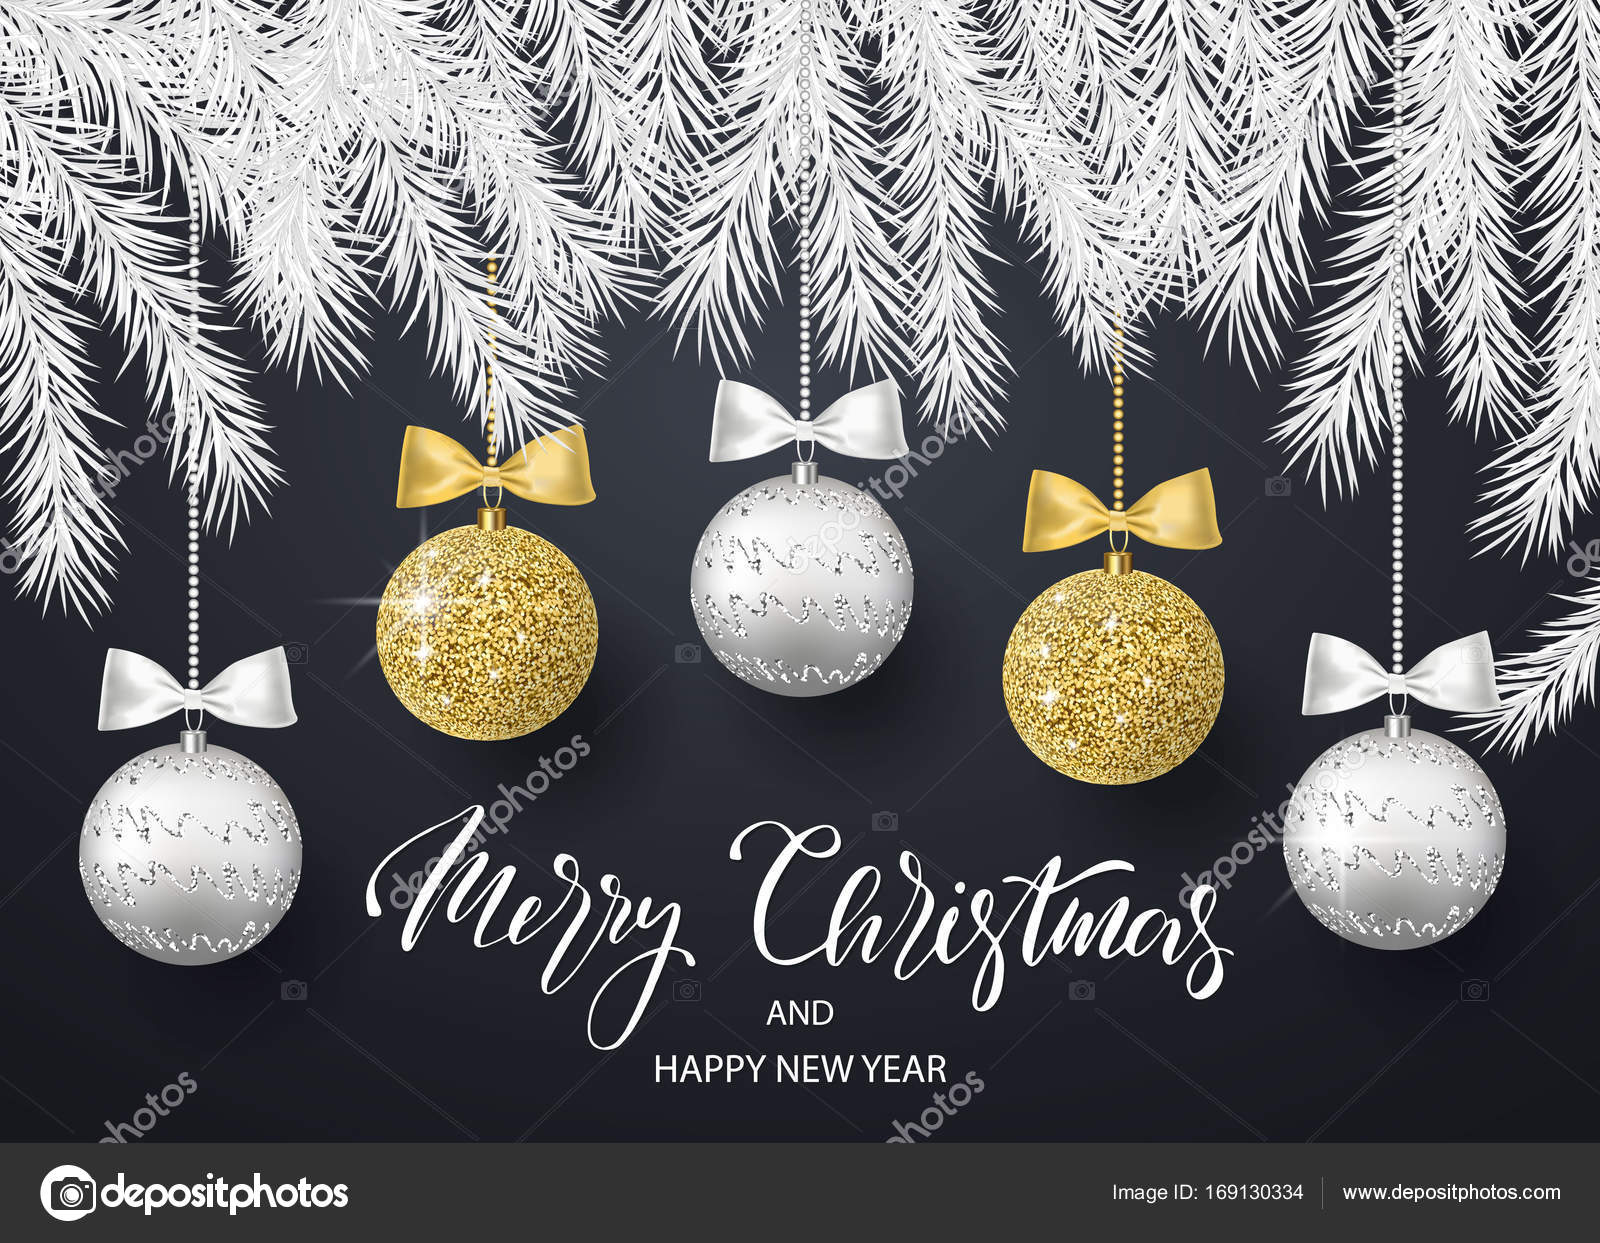 merry christmas and happy new year background for holiday greeting card invitation party flyer poster banner silver gold shiny tree balls